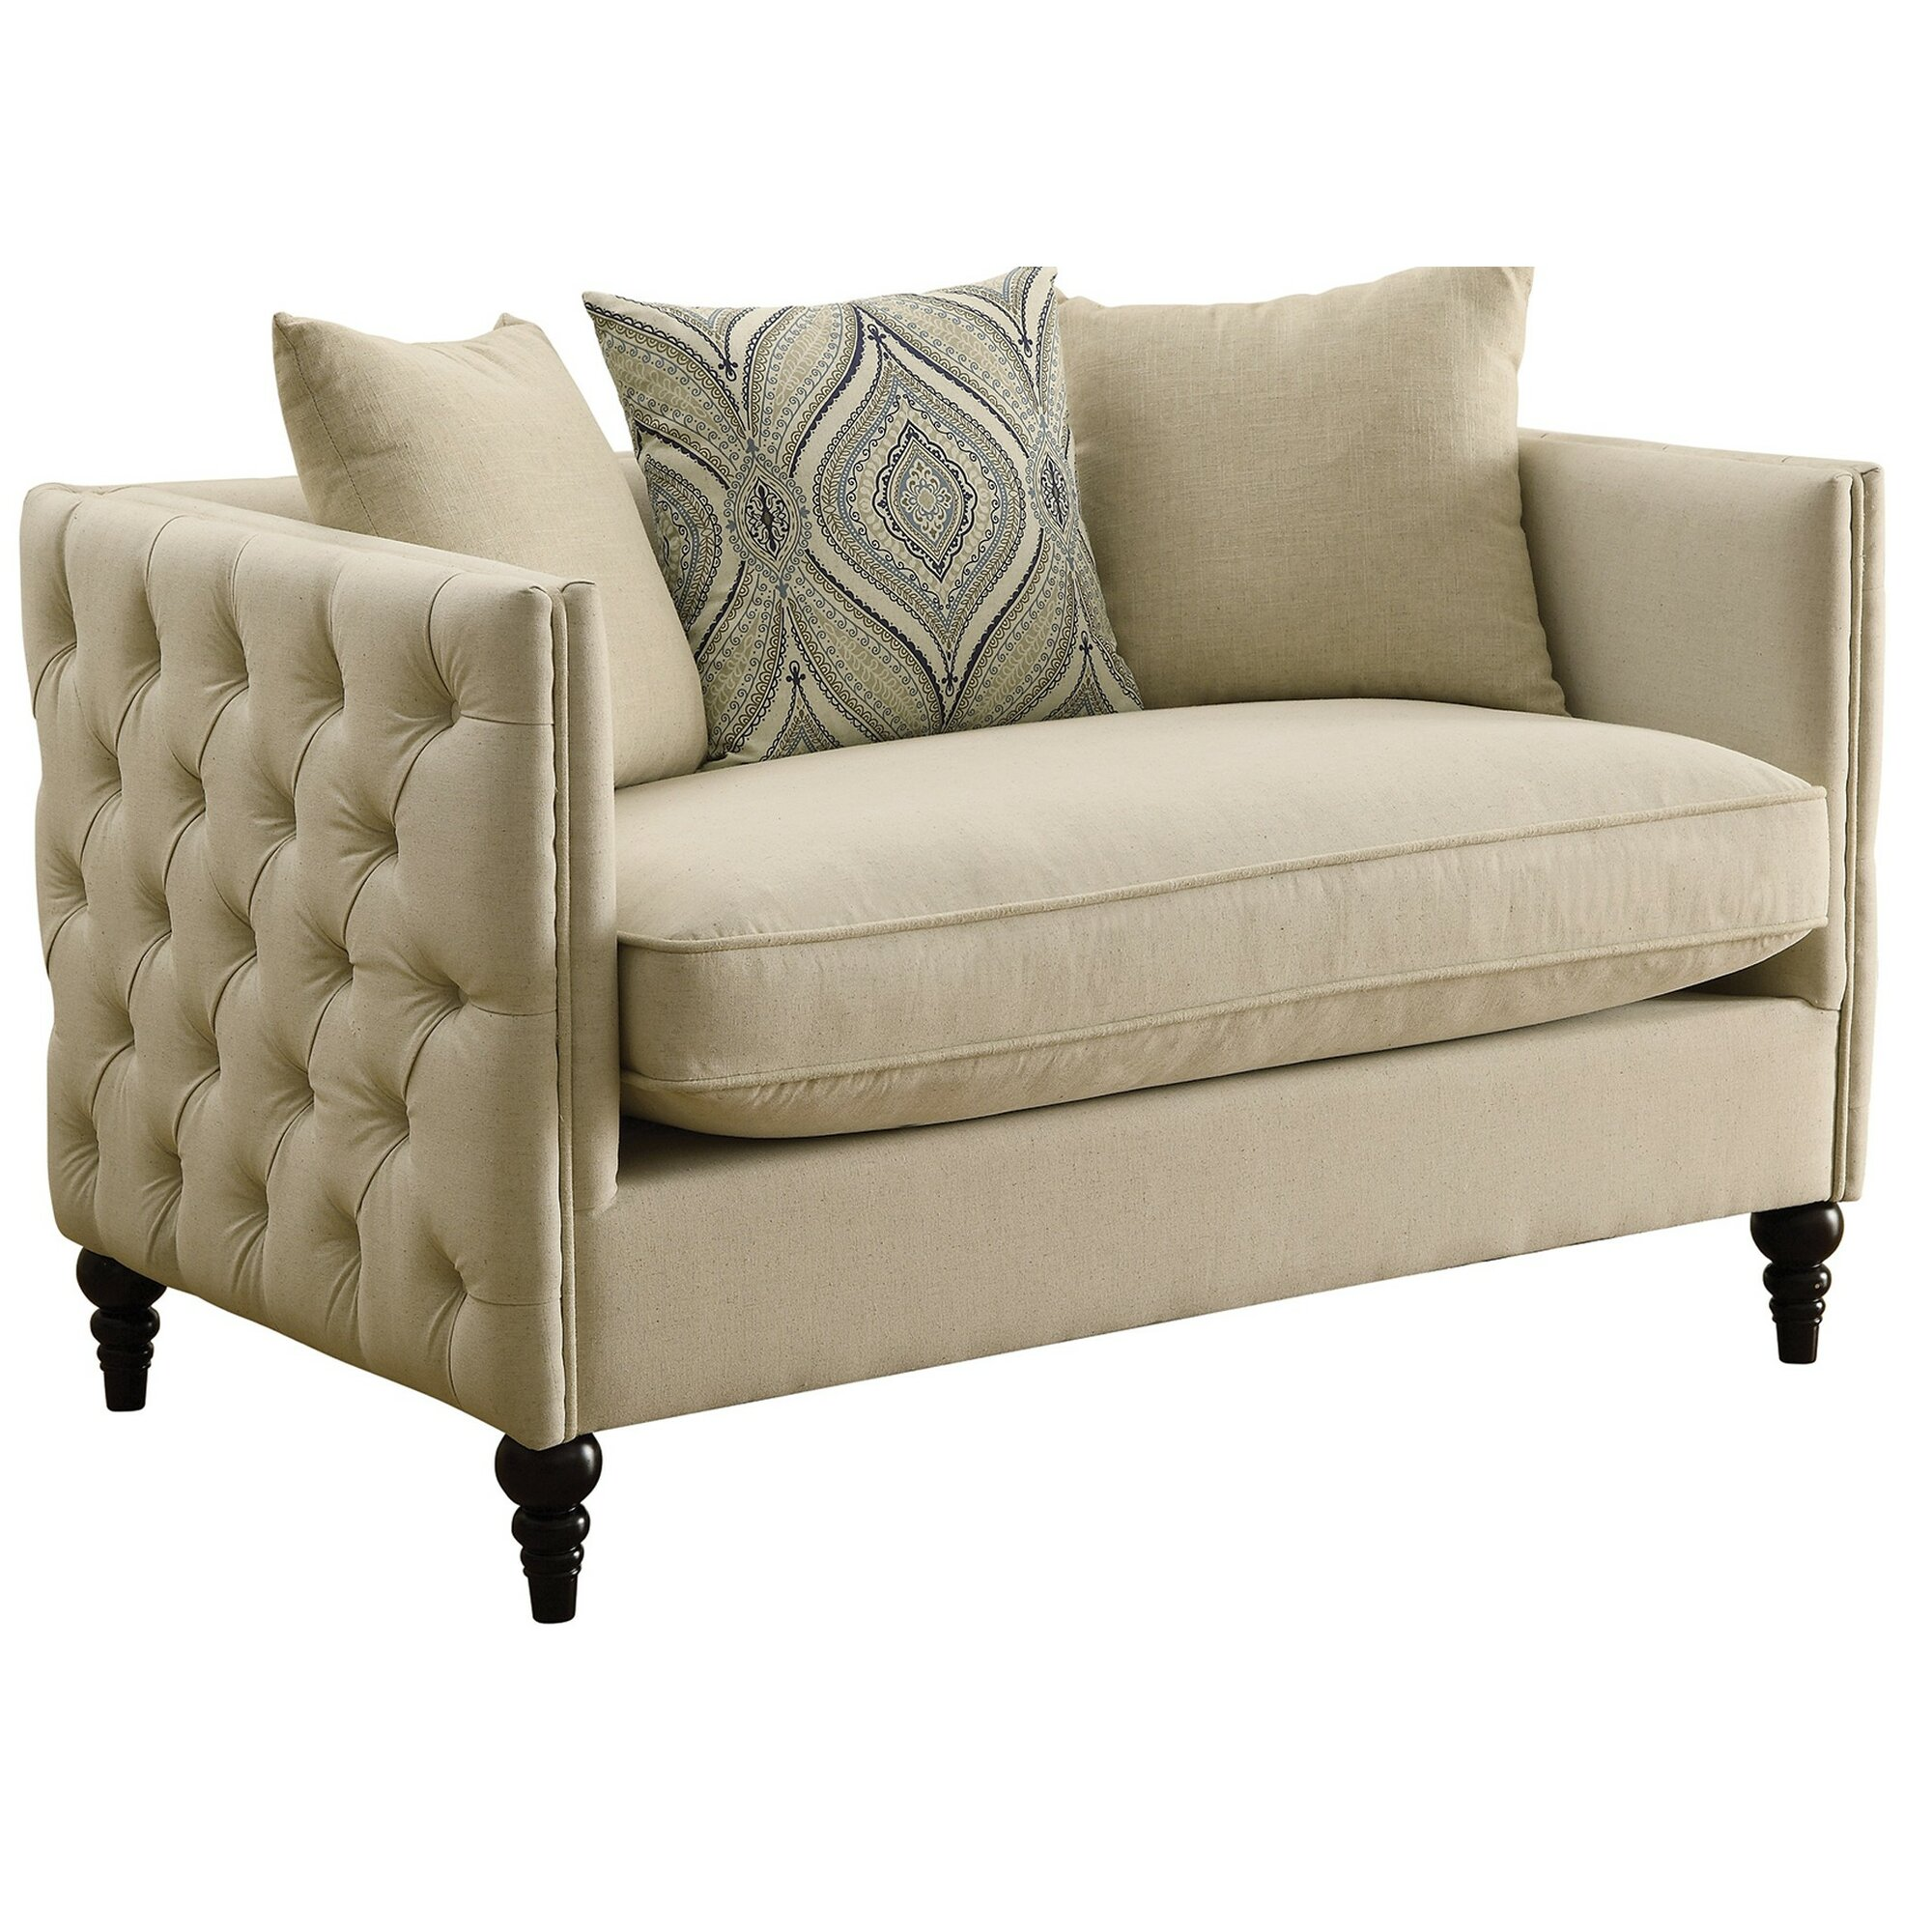 Infini Furnishings New Rochelle Sofa and Loveseat Set  : NewRochelleSofaandLoveseatSet from www.wayfair.com size 2000 x 2000 jpeg 454kB